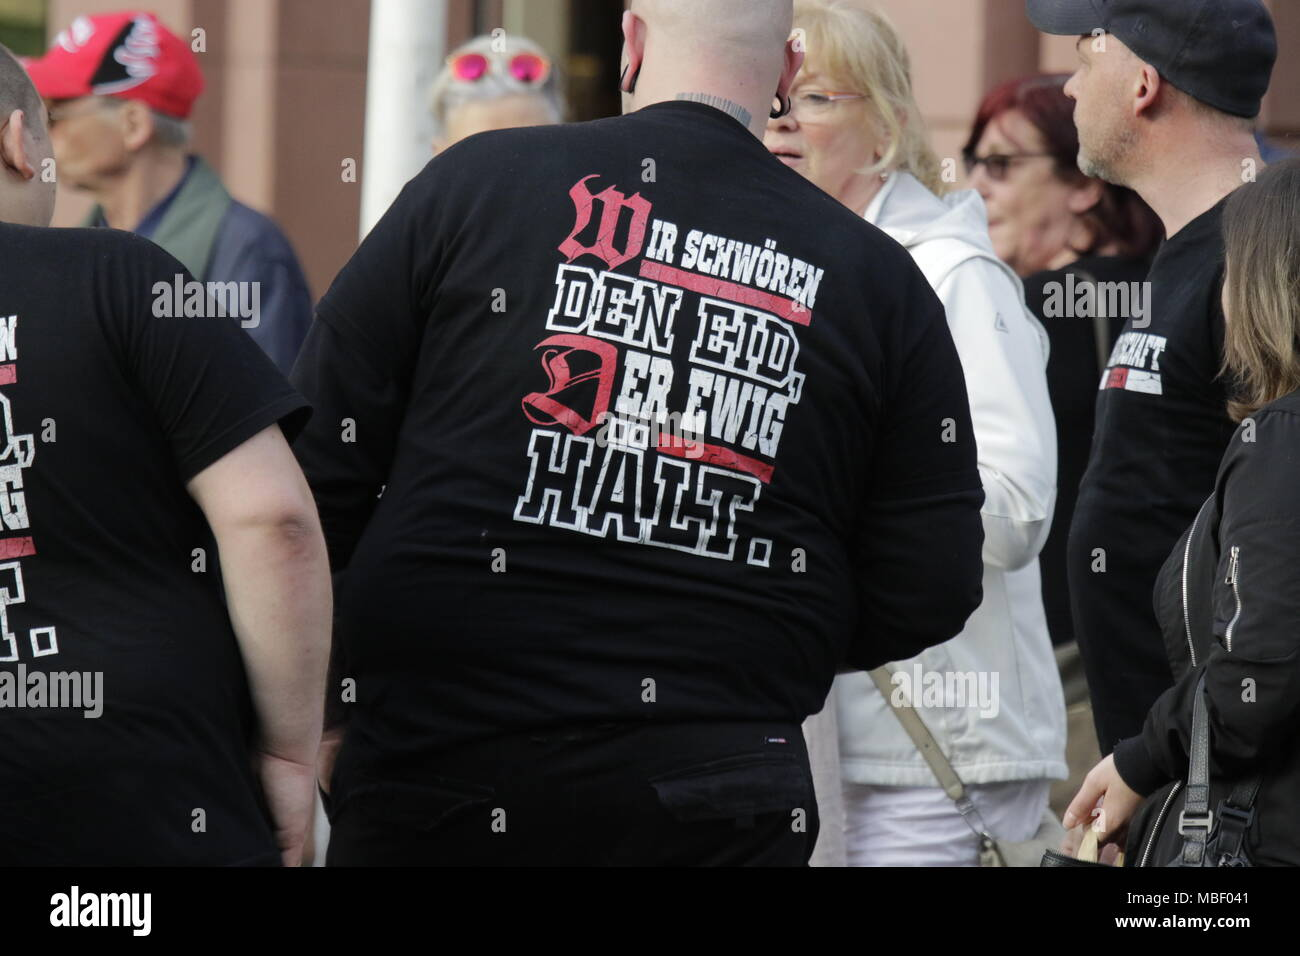 Mainz, Germany. 09th Apr, 2018. Members of the right-wing Kameradschaft Rheinhessen (comradeship Rhine-Hesse) can be seen at the protest, wearing t-shirts that read 'We swear the oath that lasts forever'. Around 50 right-wing protesters rallied in the city centre of Mainz, to protest against the German government, for the closing of the borders and against refugees under the slogan ÔMerkel has to goÕ. They were heckled by around 400 counter-protesters. Credit: Michael Debets/Pacific Press/Alamy Live News - Stock Image